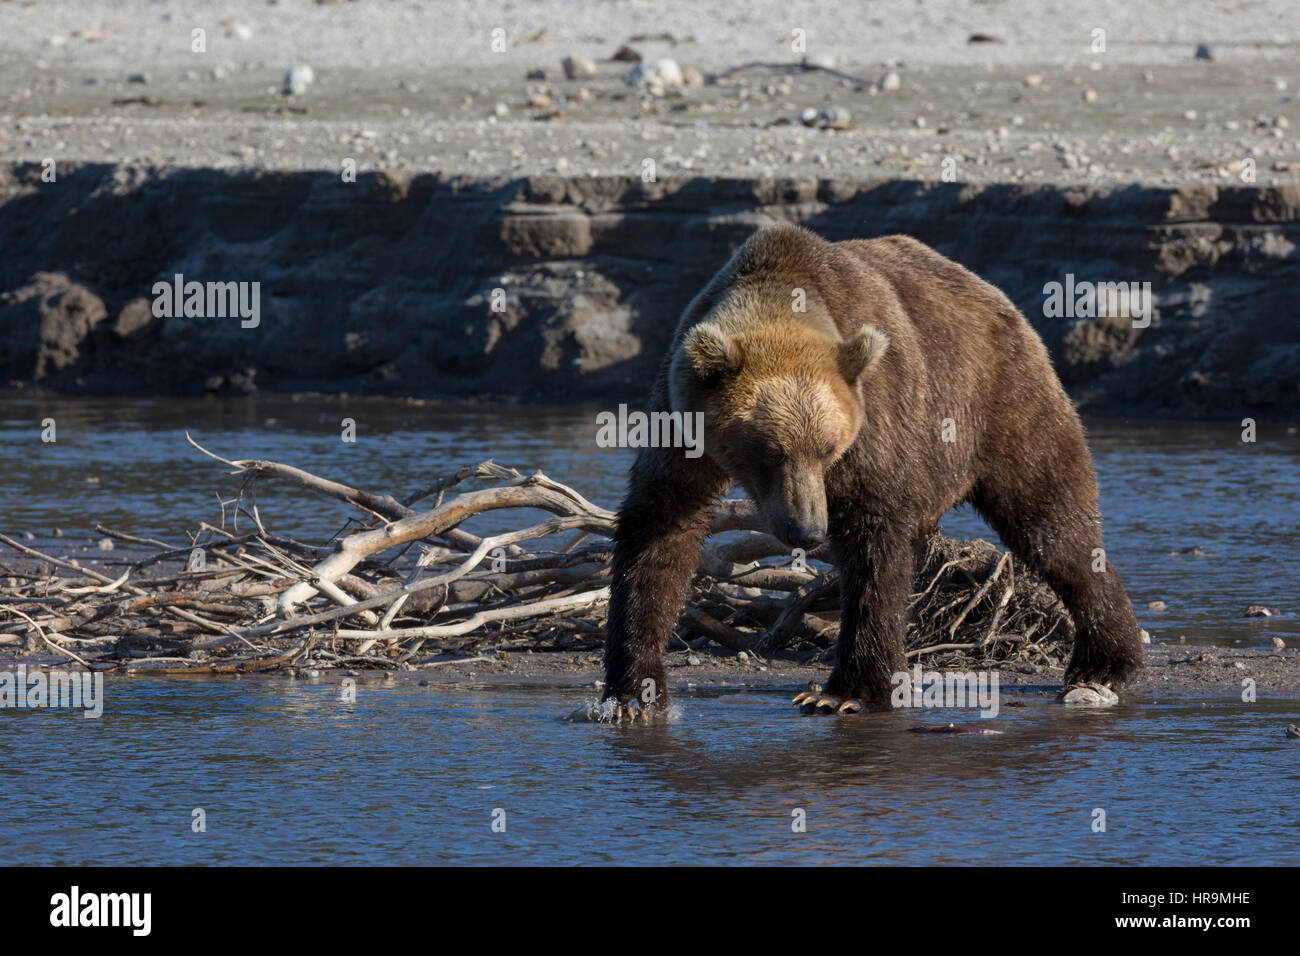 A wild brown bear is fishing in a lake in its habitat - Stock Image